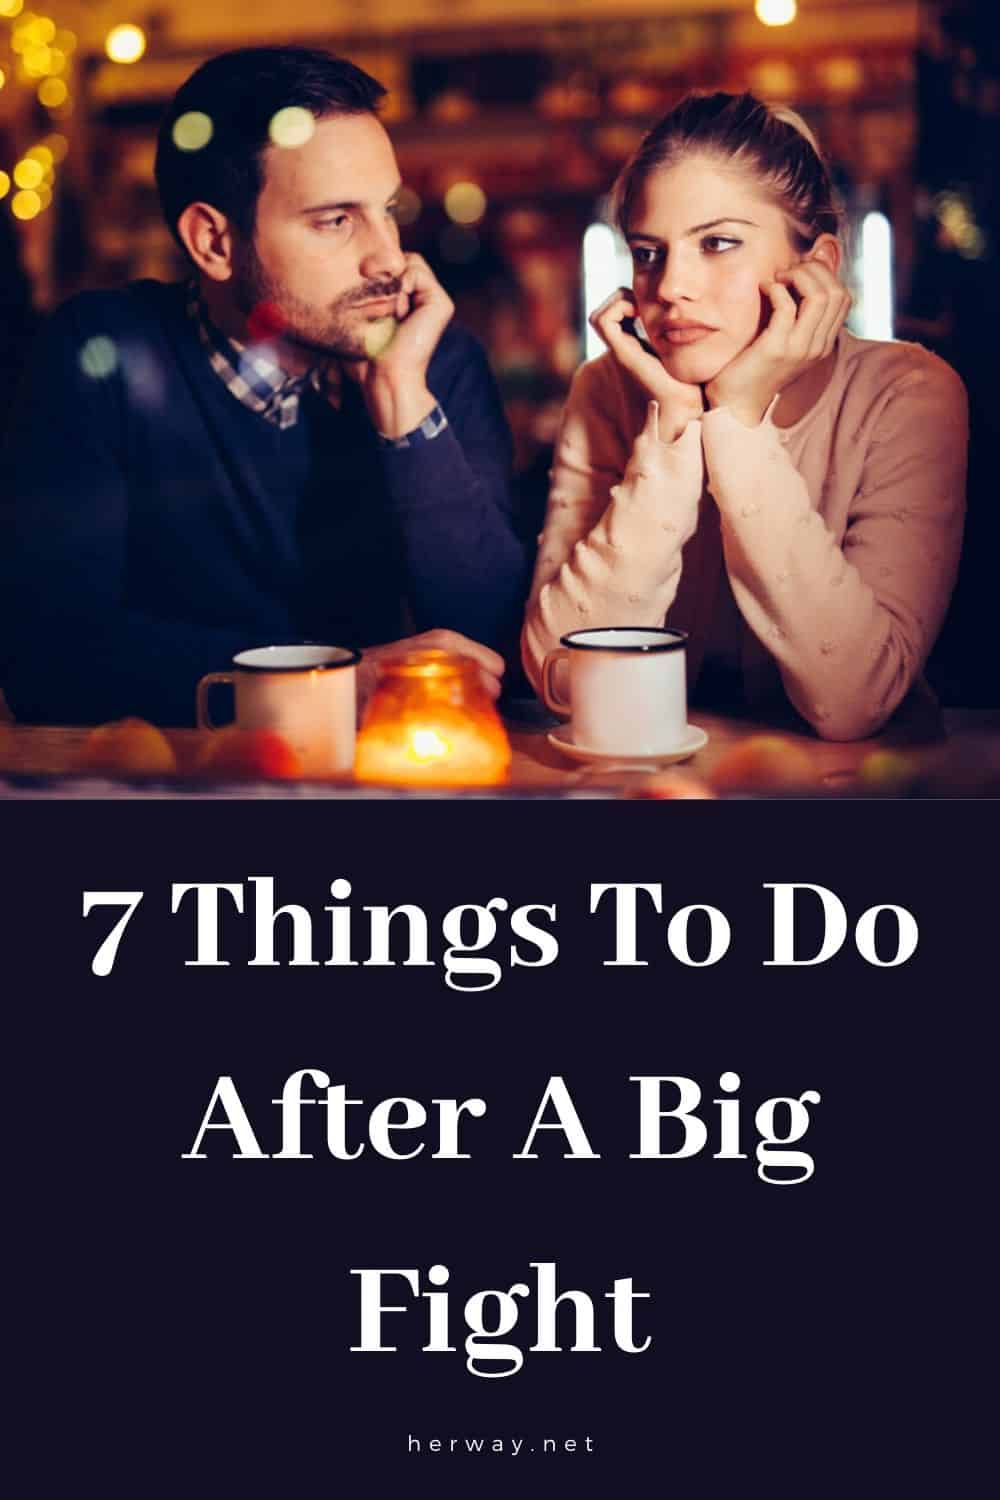 7 Things To Do After A Big Fight